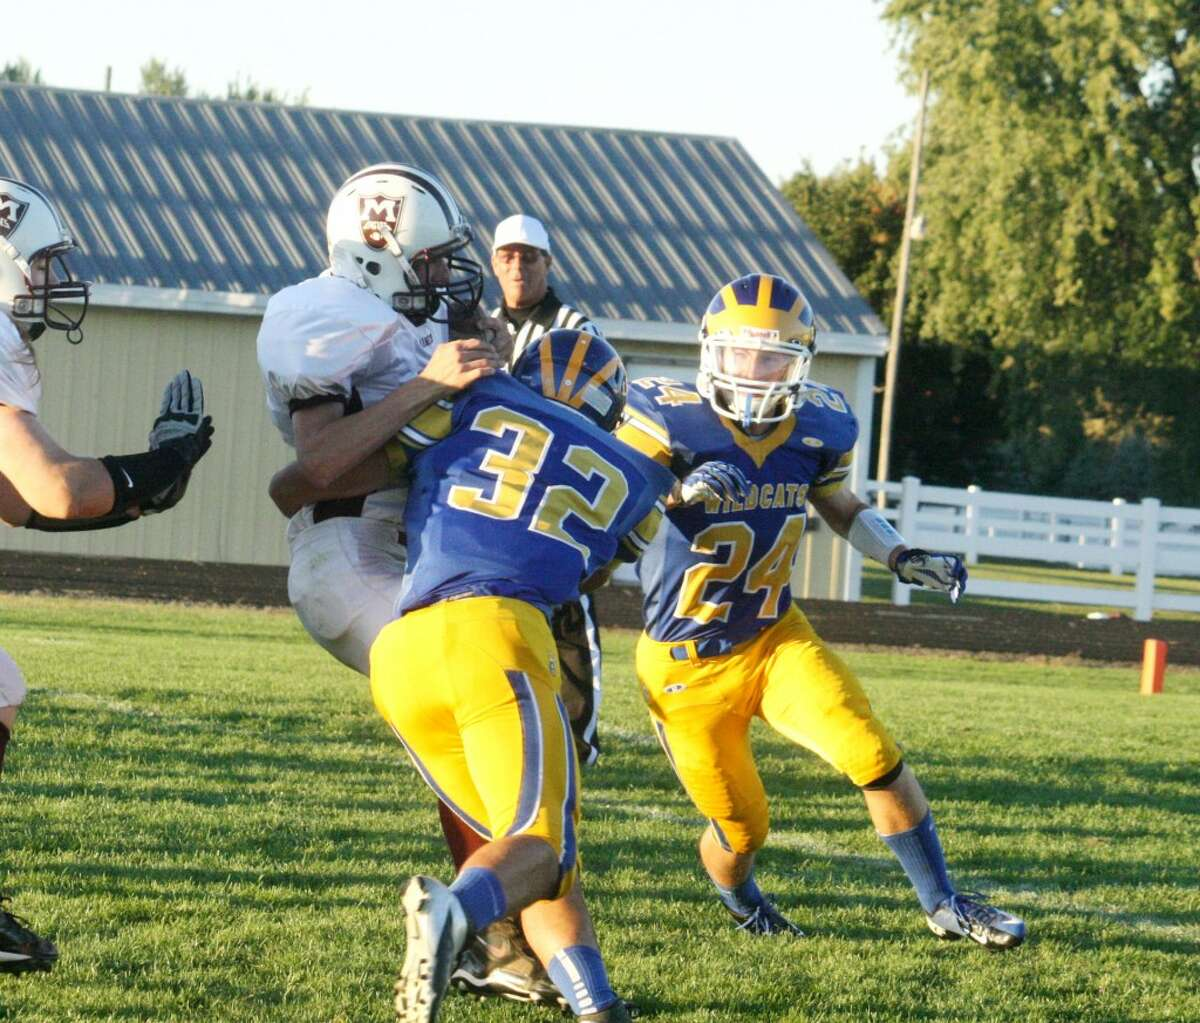 WRAPPED UP: Evart's Austin Grein (32) wraps up a Marion ball carrier during Friday's football contest at Evart High School. (Herald Review photo/John Raffel)